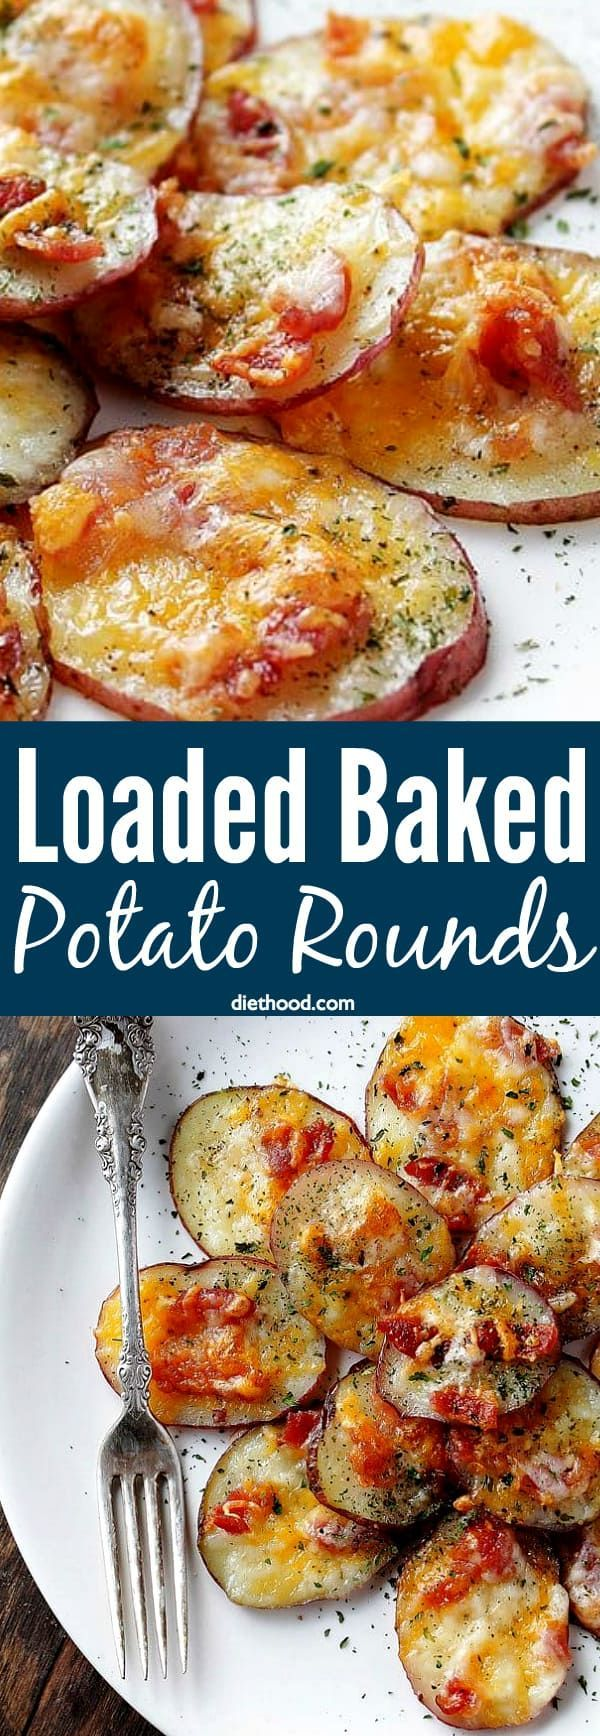 Loaded Baked Potato Rounds – Baked potato slices topped with crunchy bacon and melty cheese!